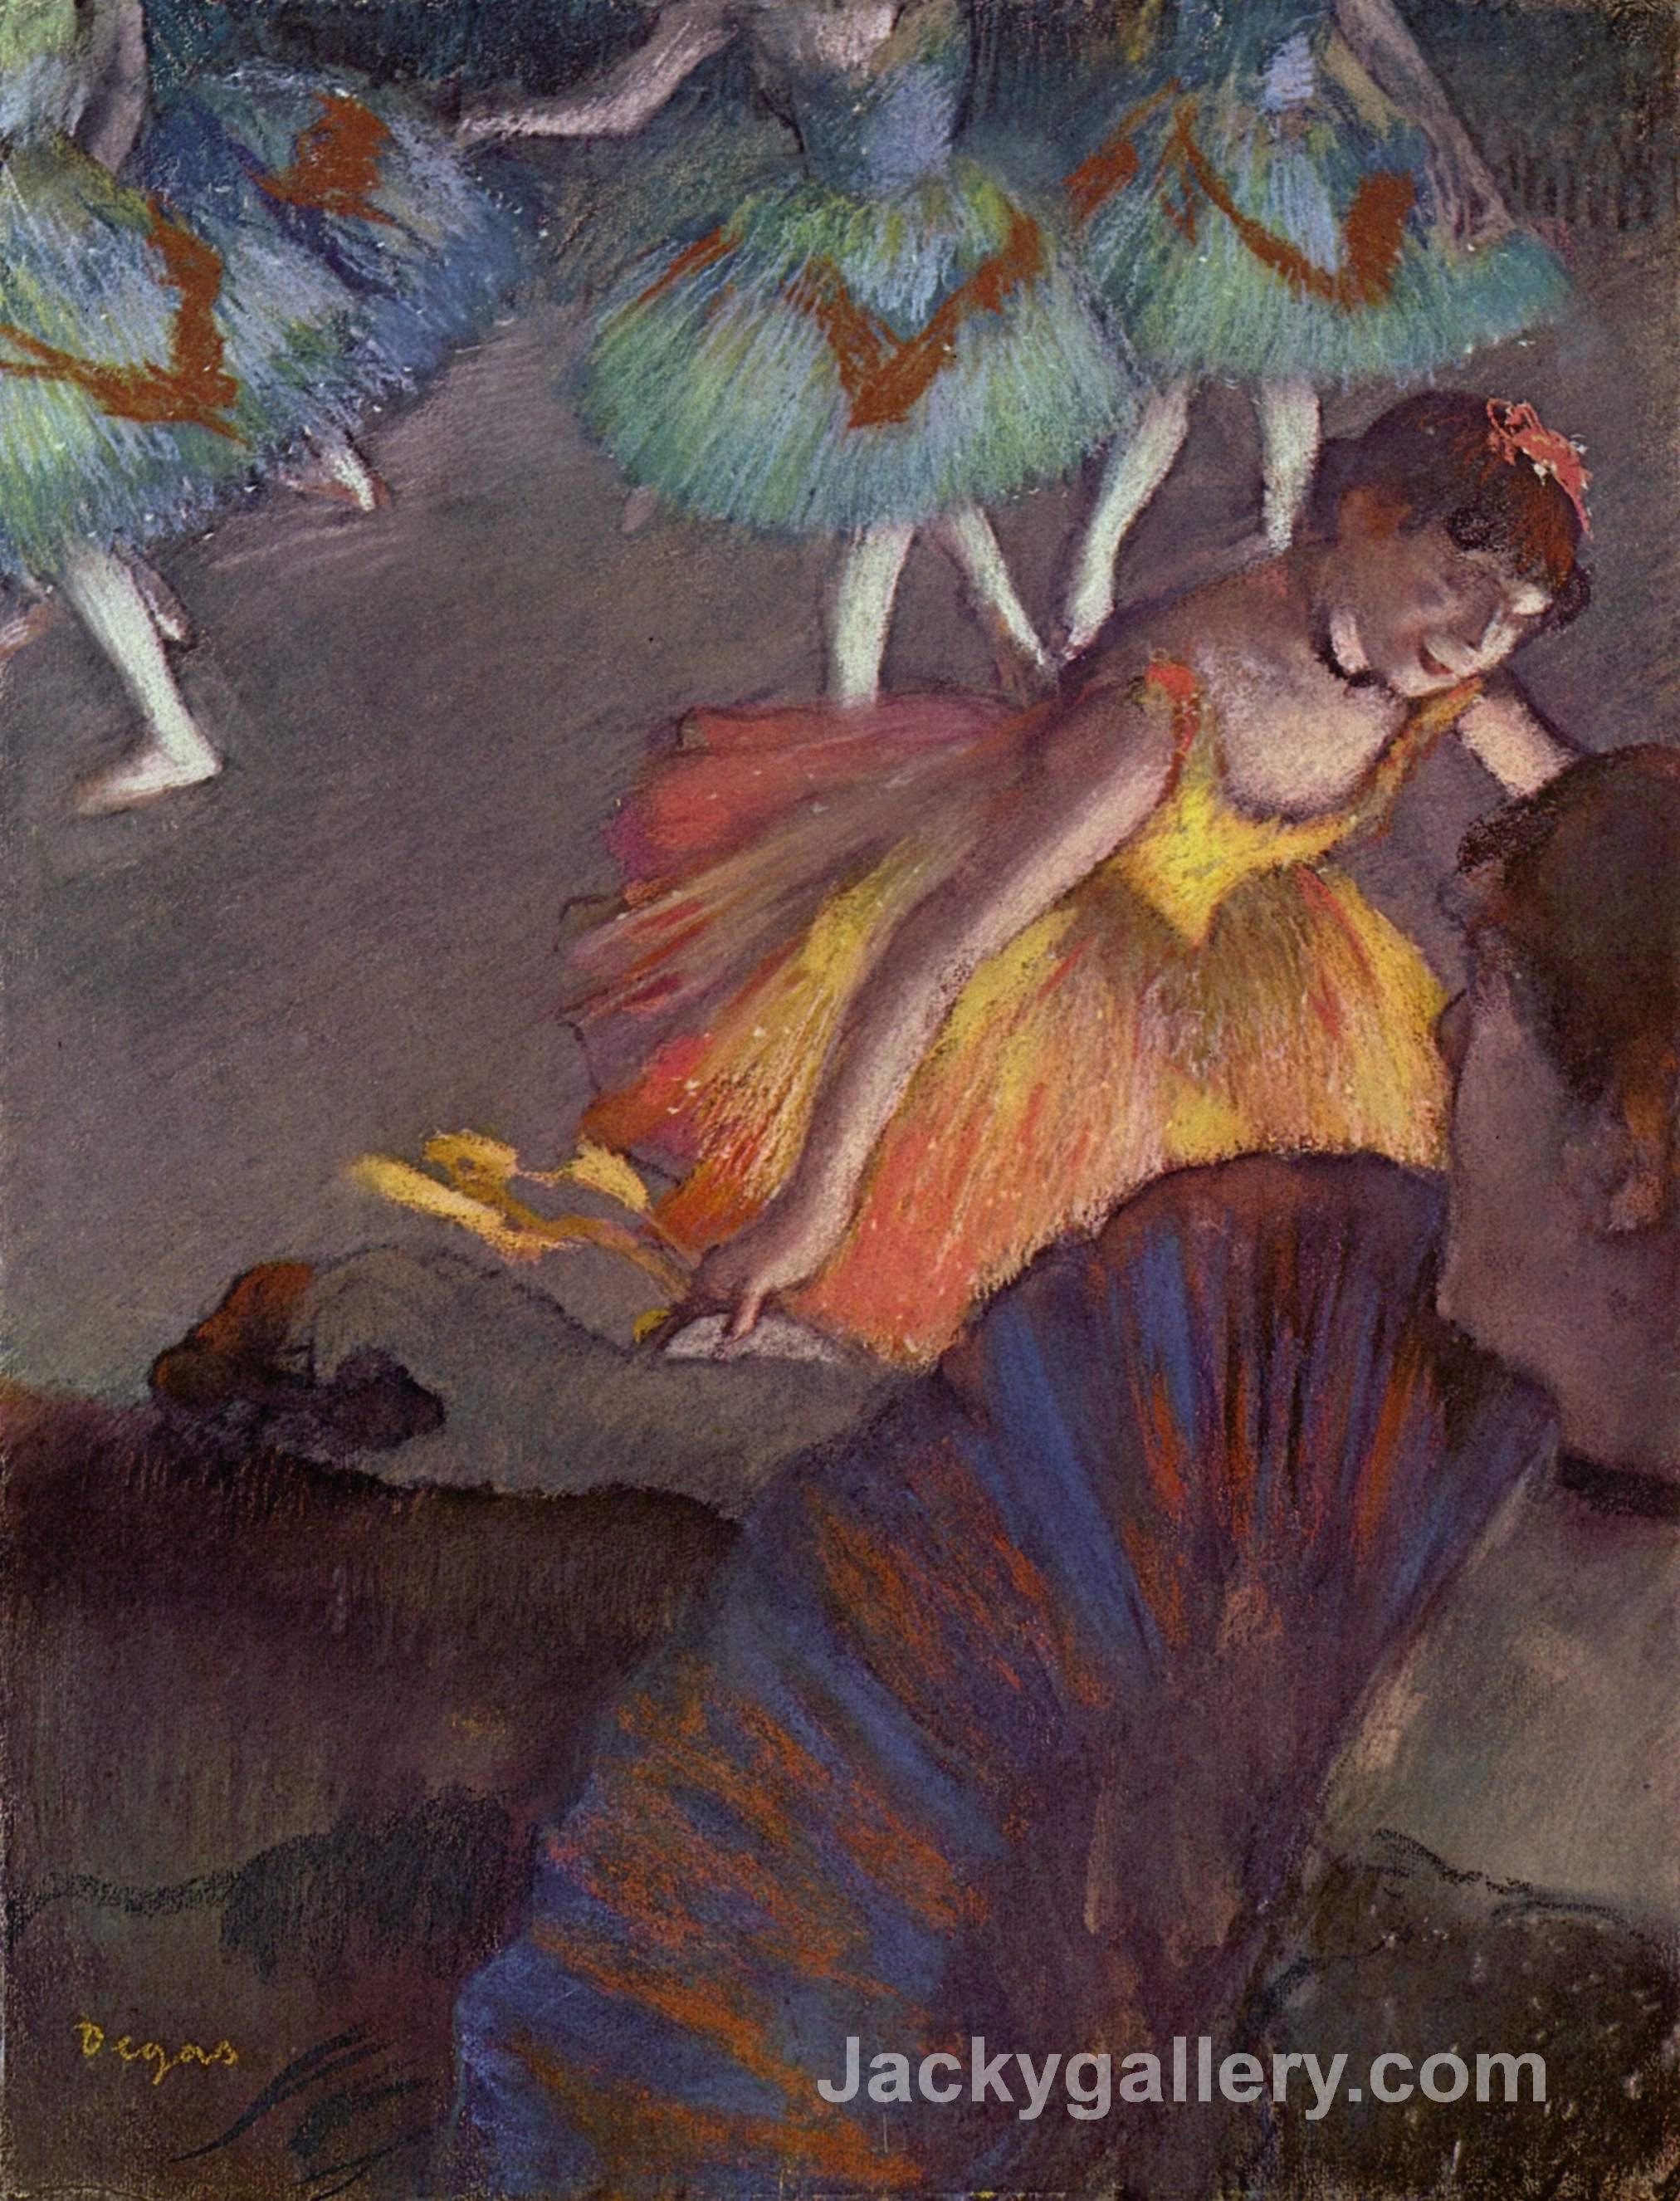 Ballerina and Lady with a Fan by Edgar Degas paintings reproduction